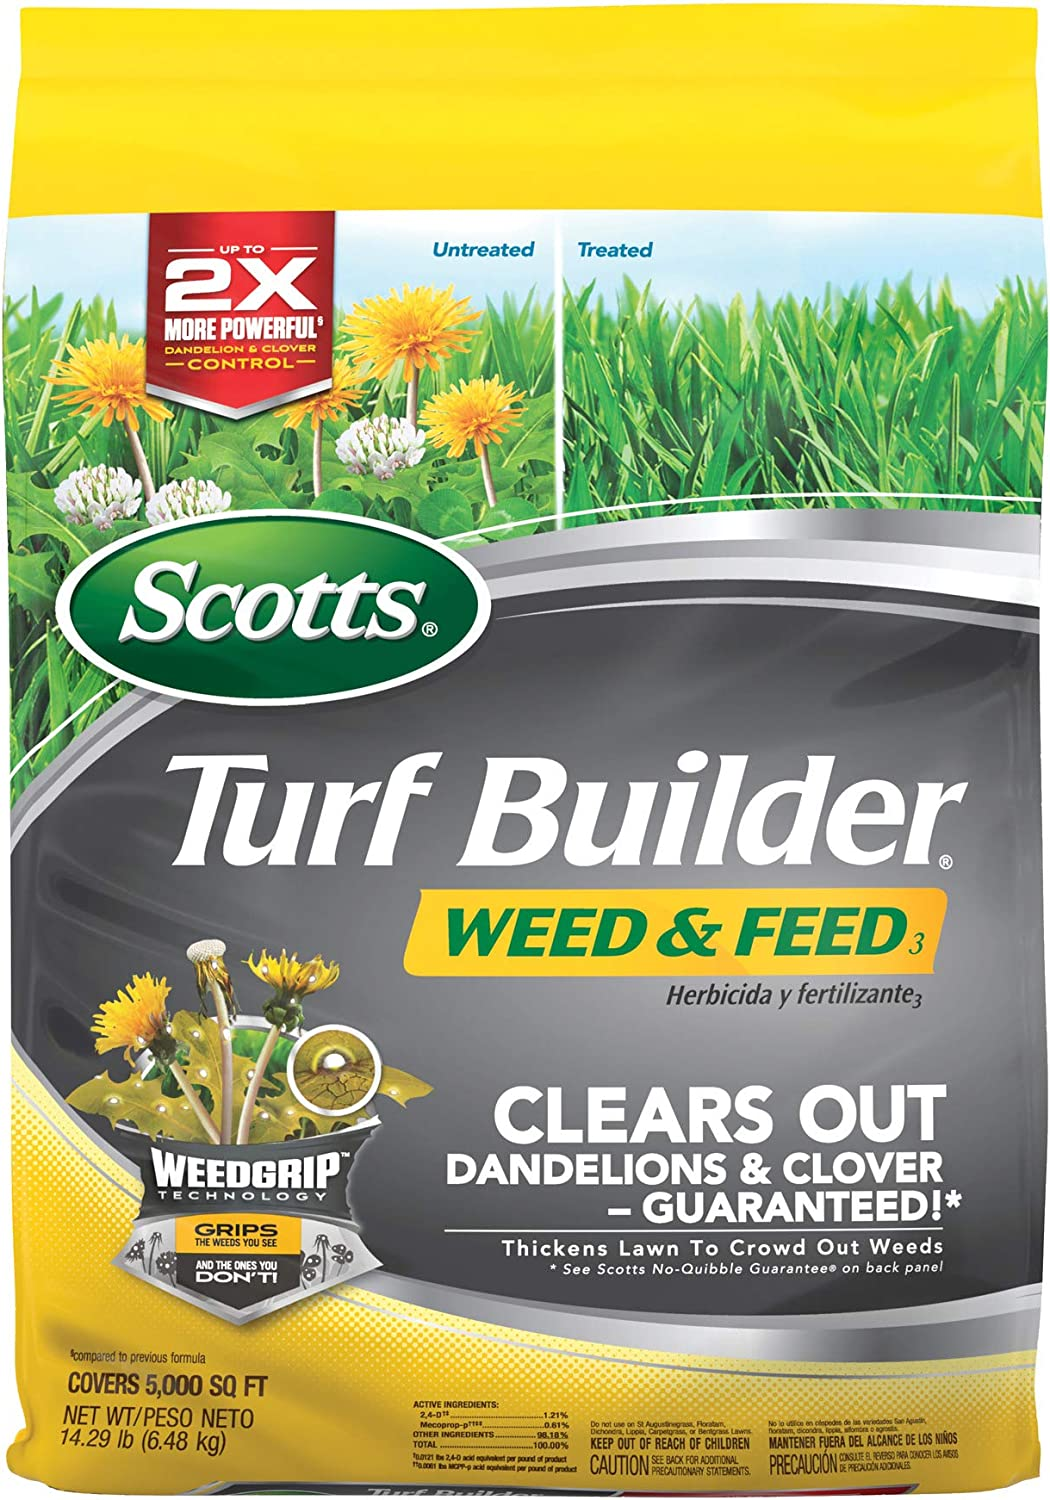 Scotts 5,000 Sq. Ft Turf Builder Weed and Feed  $14.86 Coupon